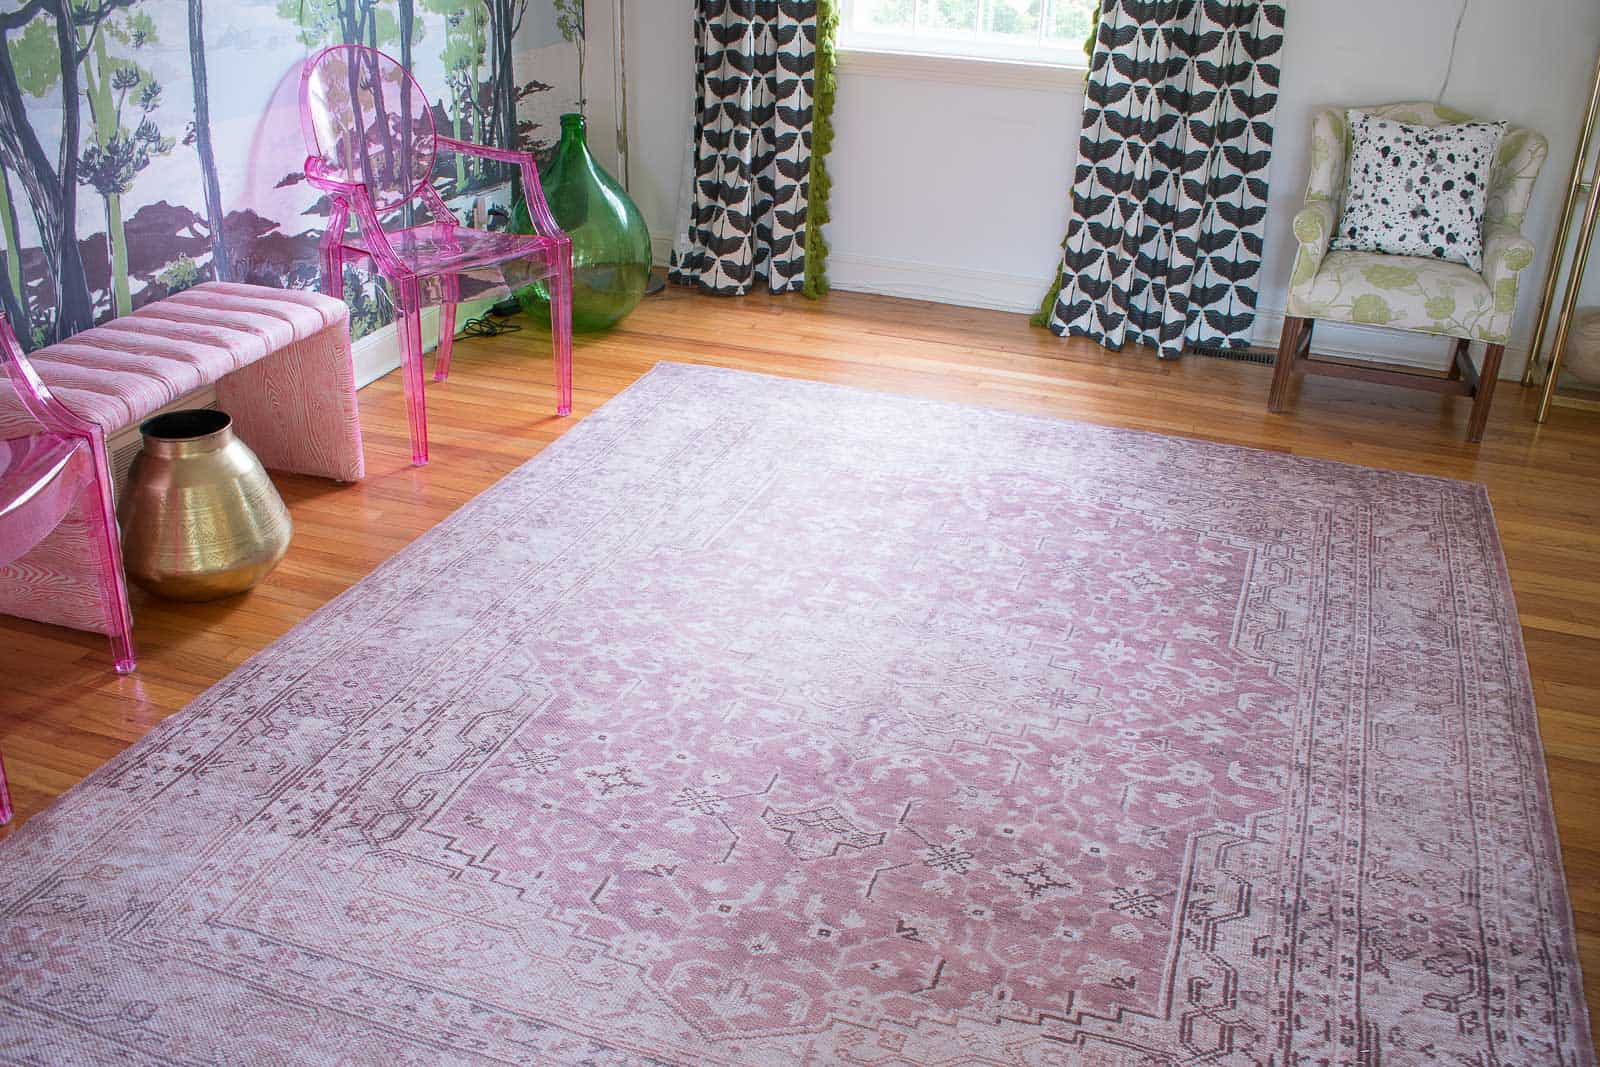 magnolia rug in dining room